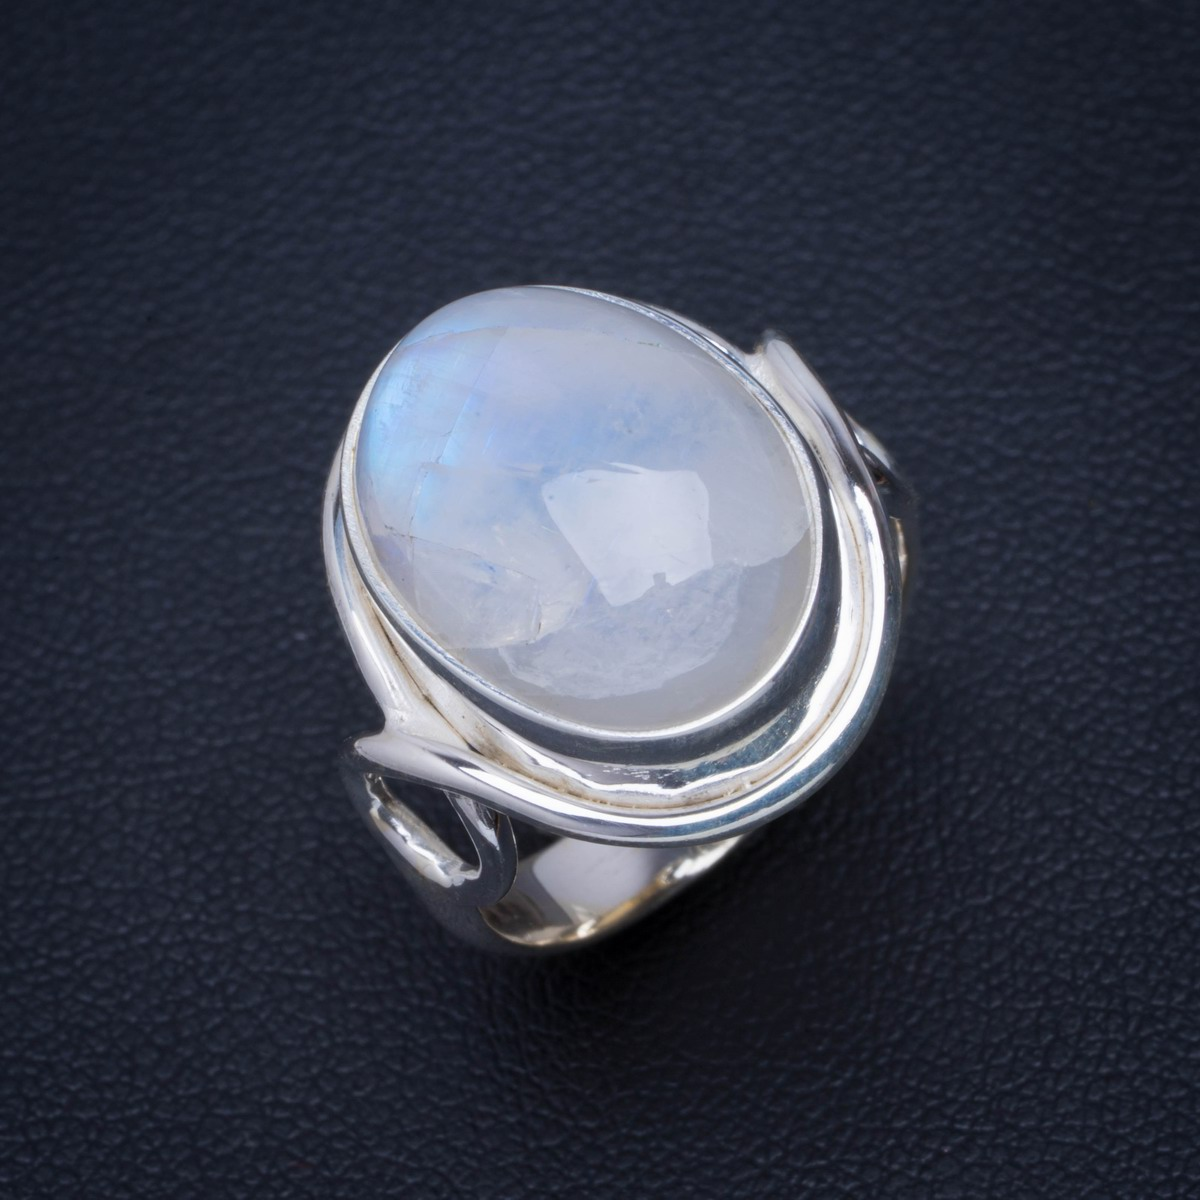 Natural Rainbow Moonstone Handmade Unique 925 Sterling Silver Ring 6.25 B1171Natural Rainbow Moonstone Handmade Unique 925 Sterling Silver Ring 6.25 B1171